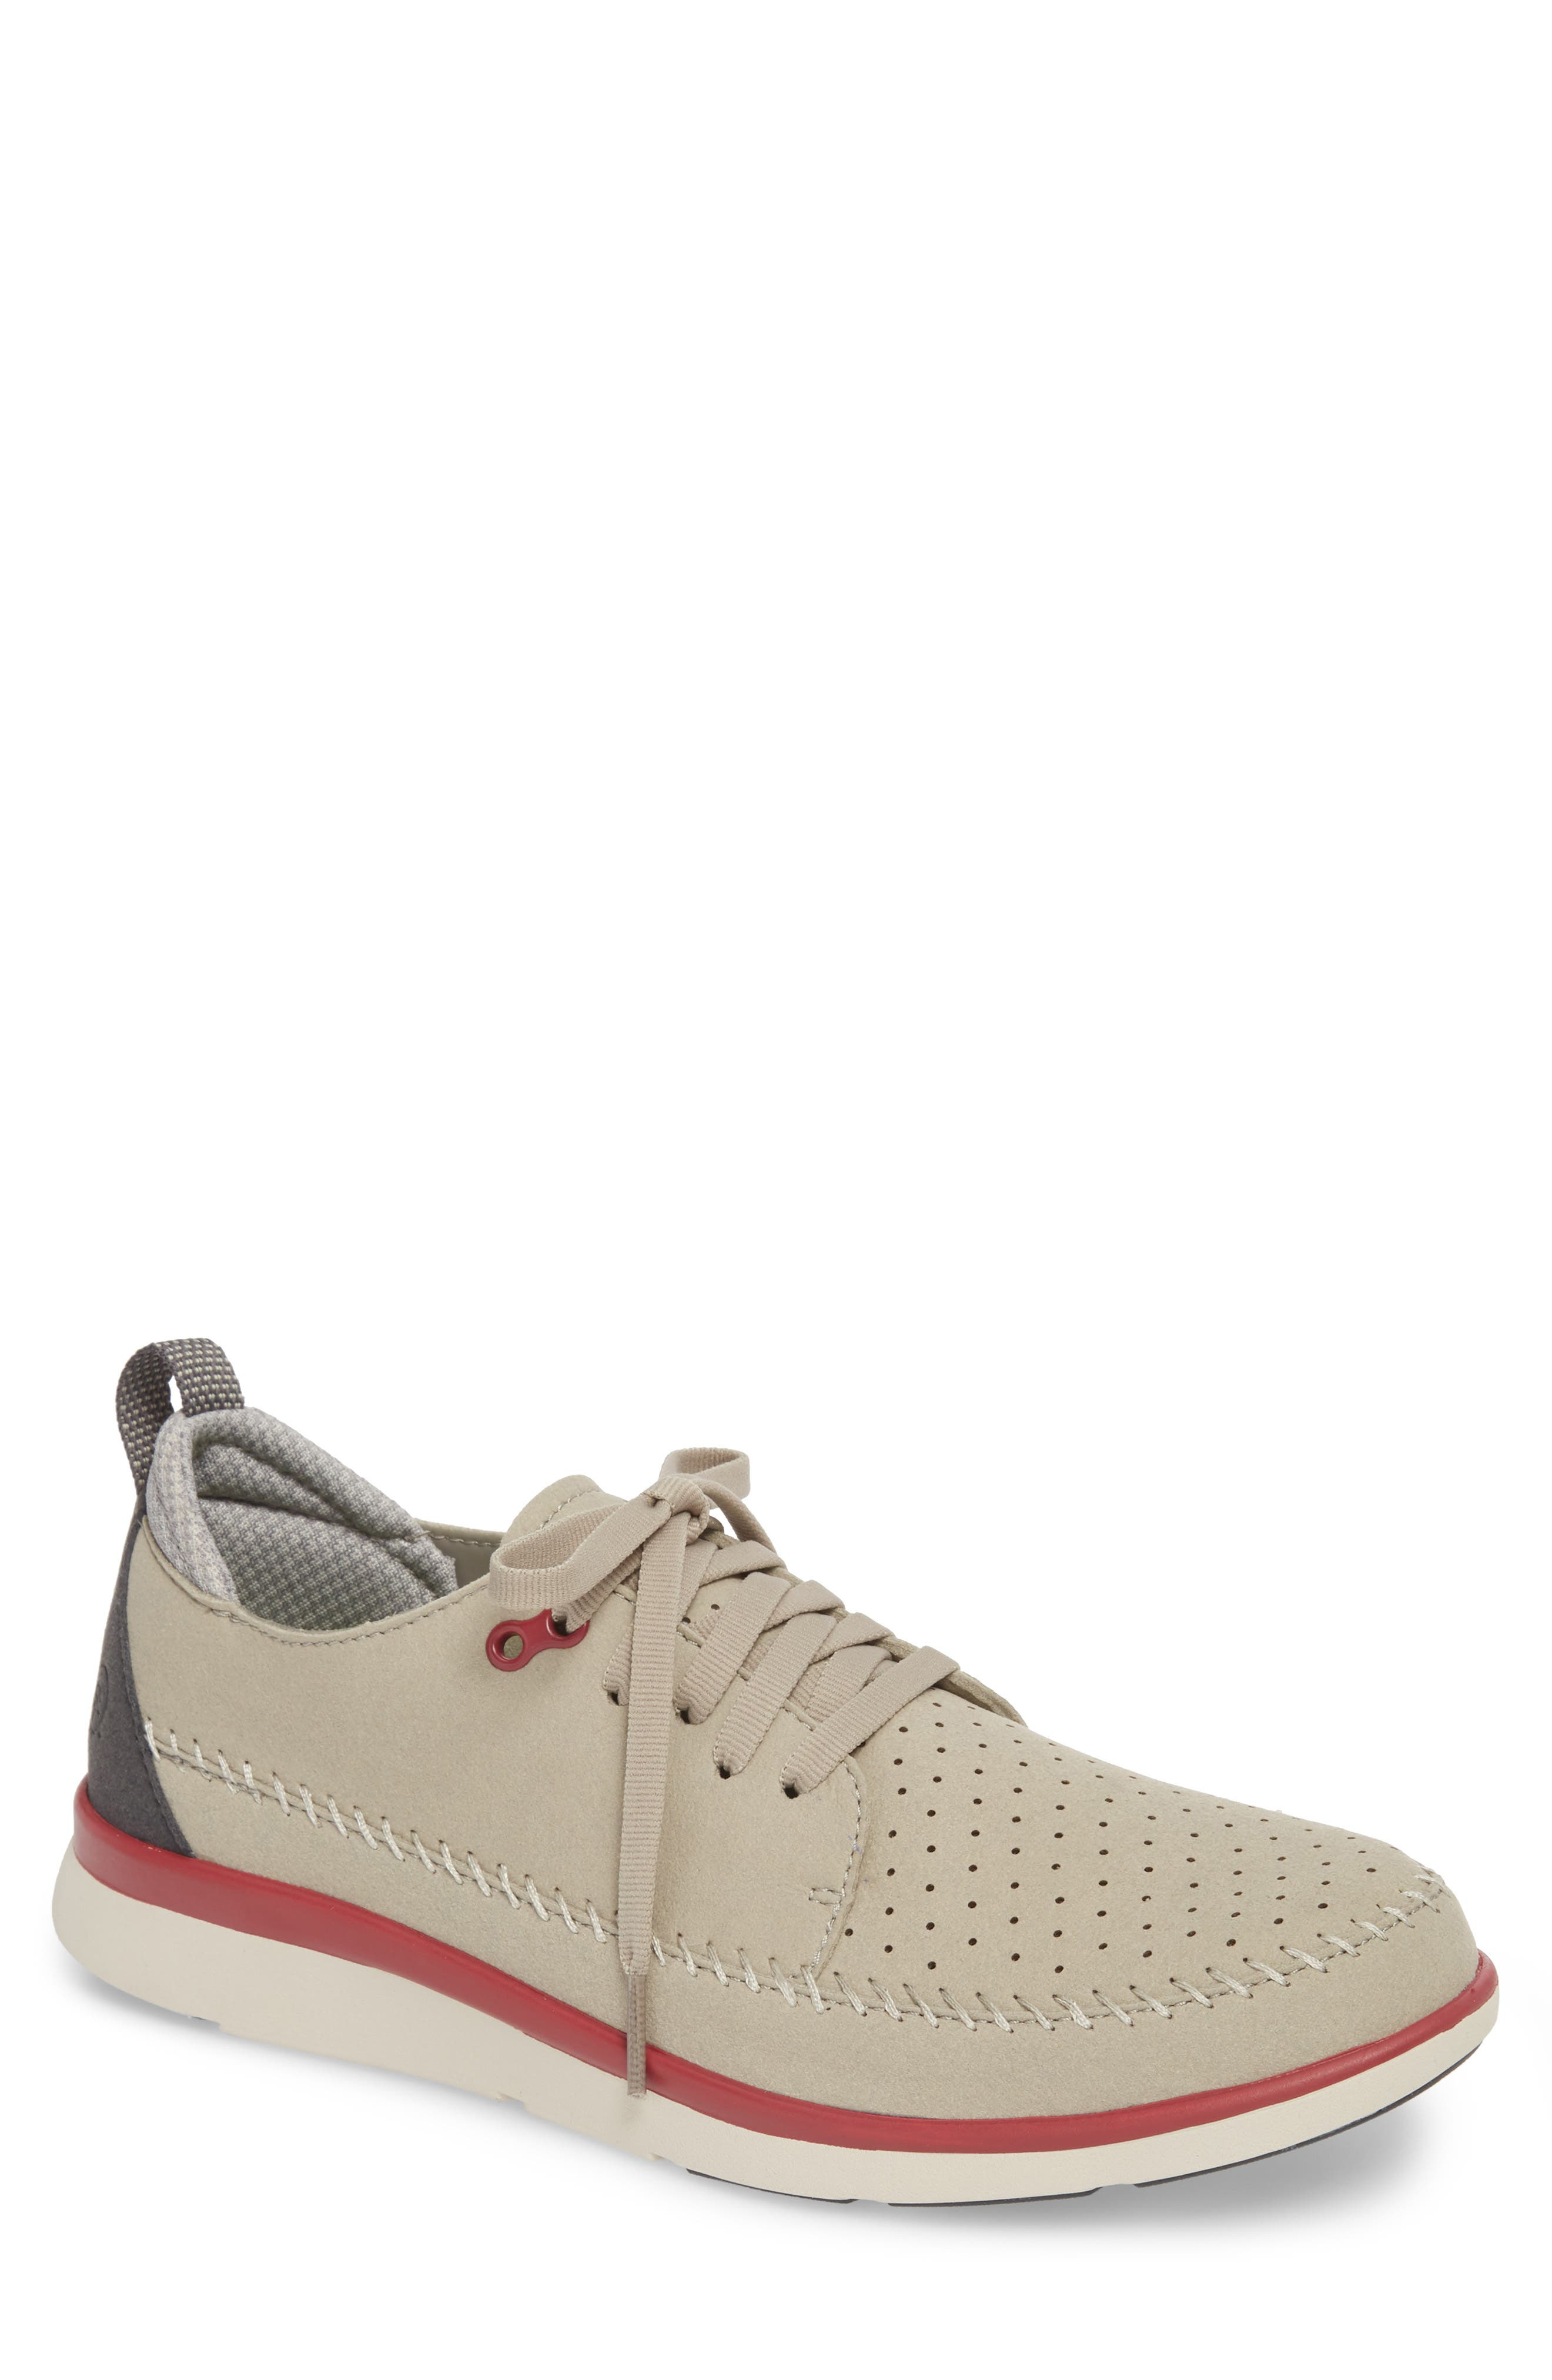 Worldwide Crane Perforated Sneaker,                         Main,                         color, Grey